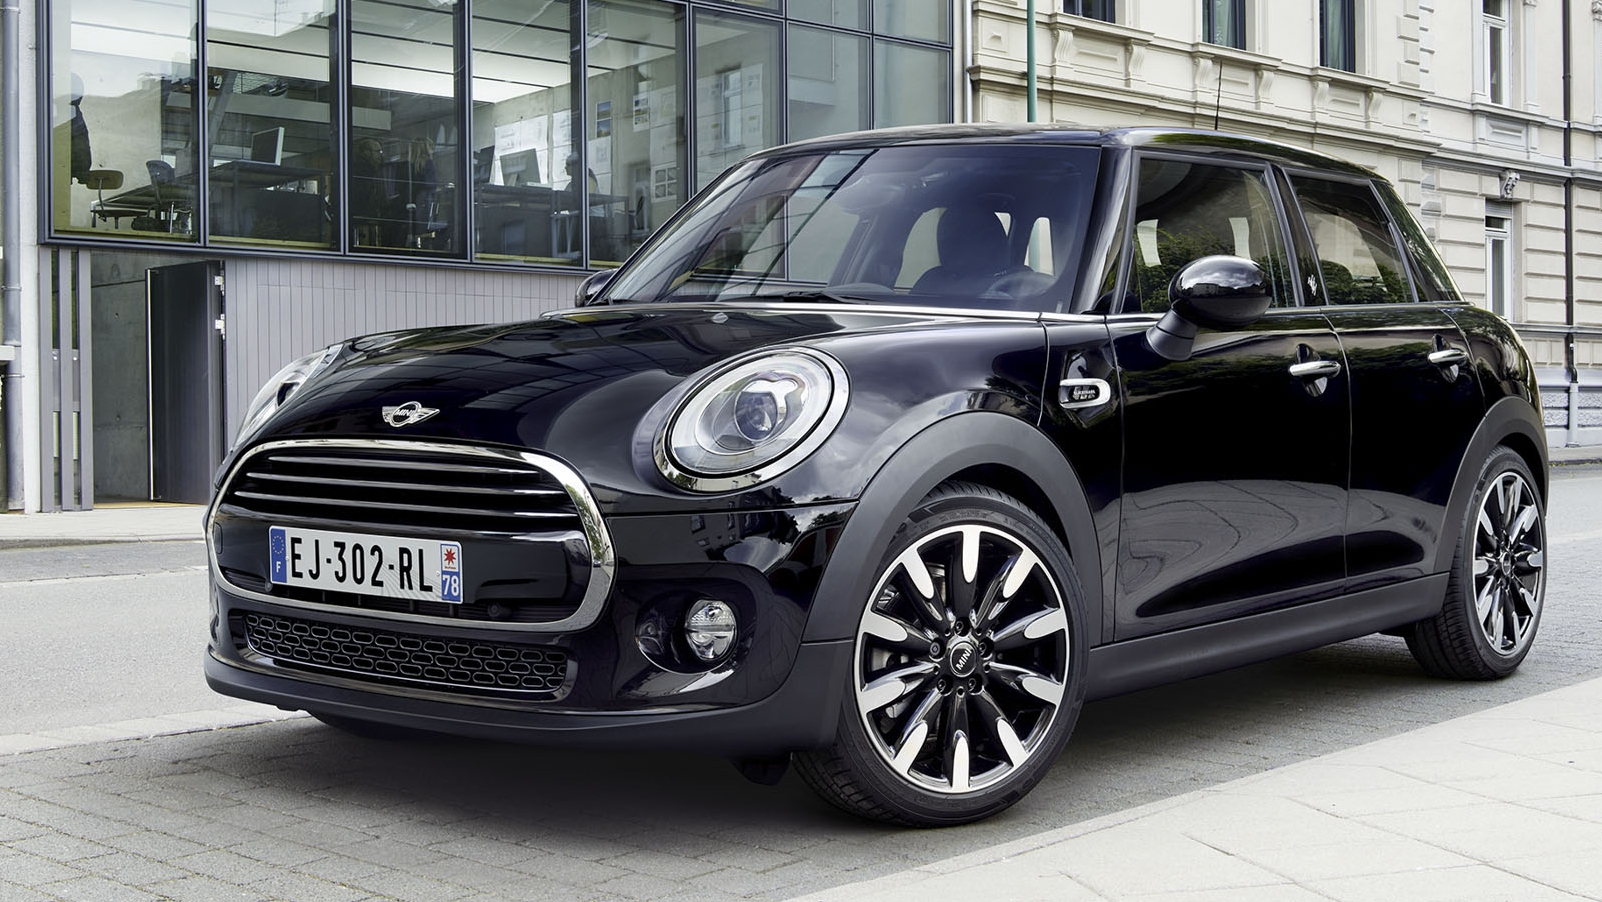 Mini Cooper Blackfriars : 2017 mini cooper blackfriars edition pictures photos wallpapers top speed ~ Medecine-chirurgie-esthetiques.com Avis de Voitures